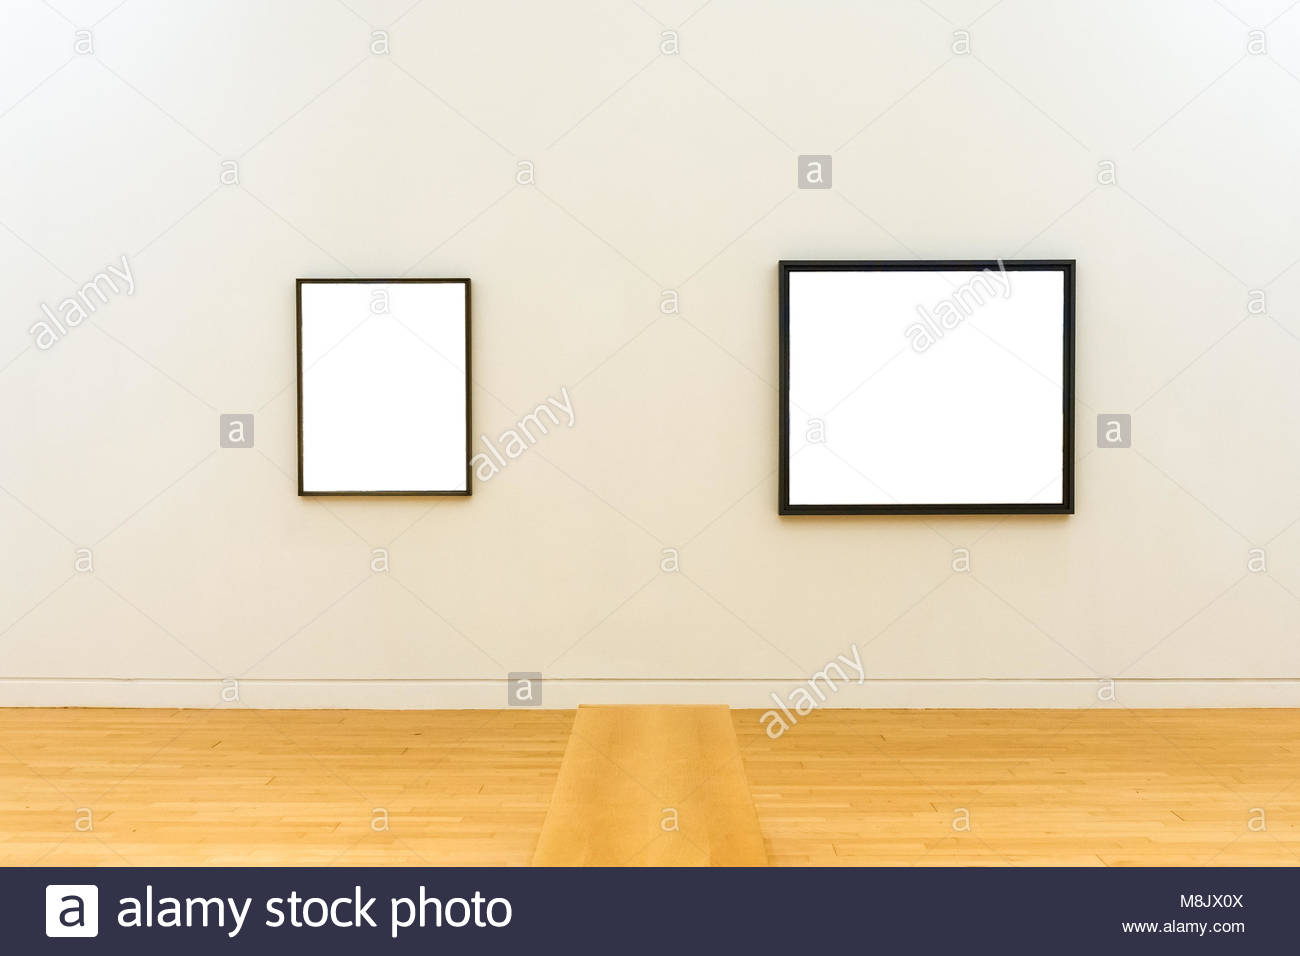 Mockup Frame On Floor Stock Photos & Mockup Frame On Floor Stock ...